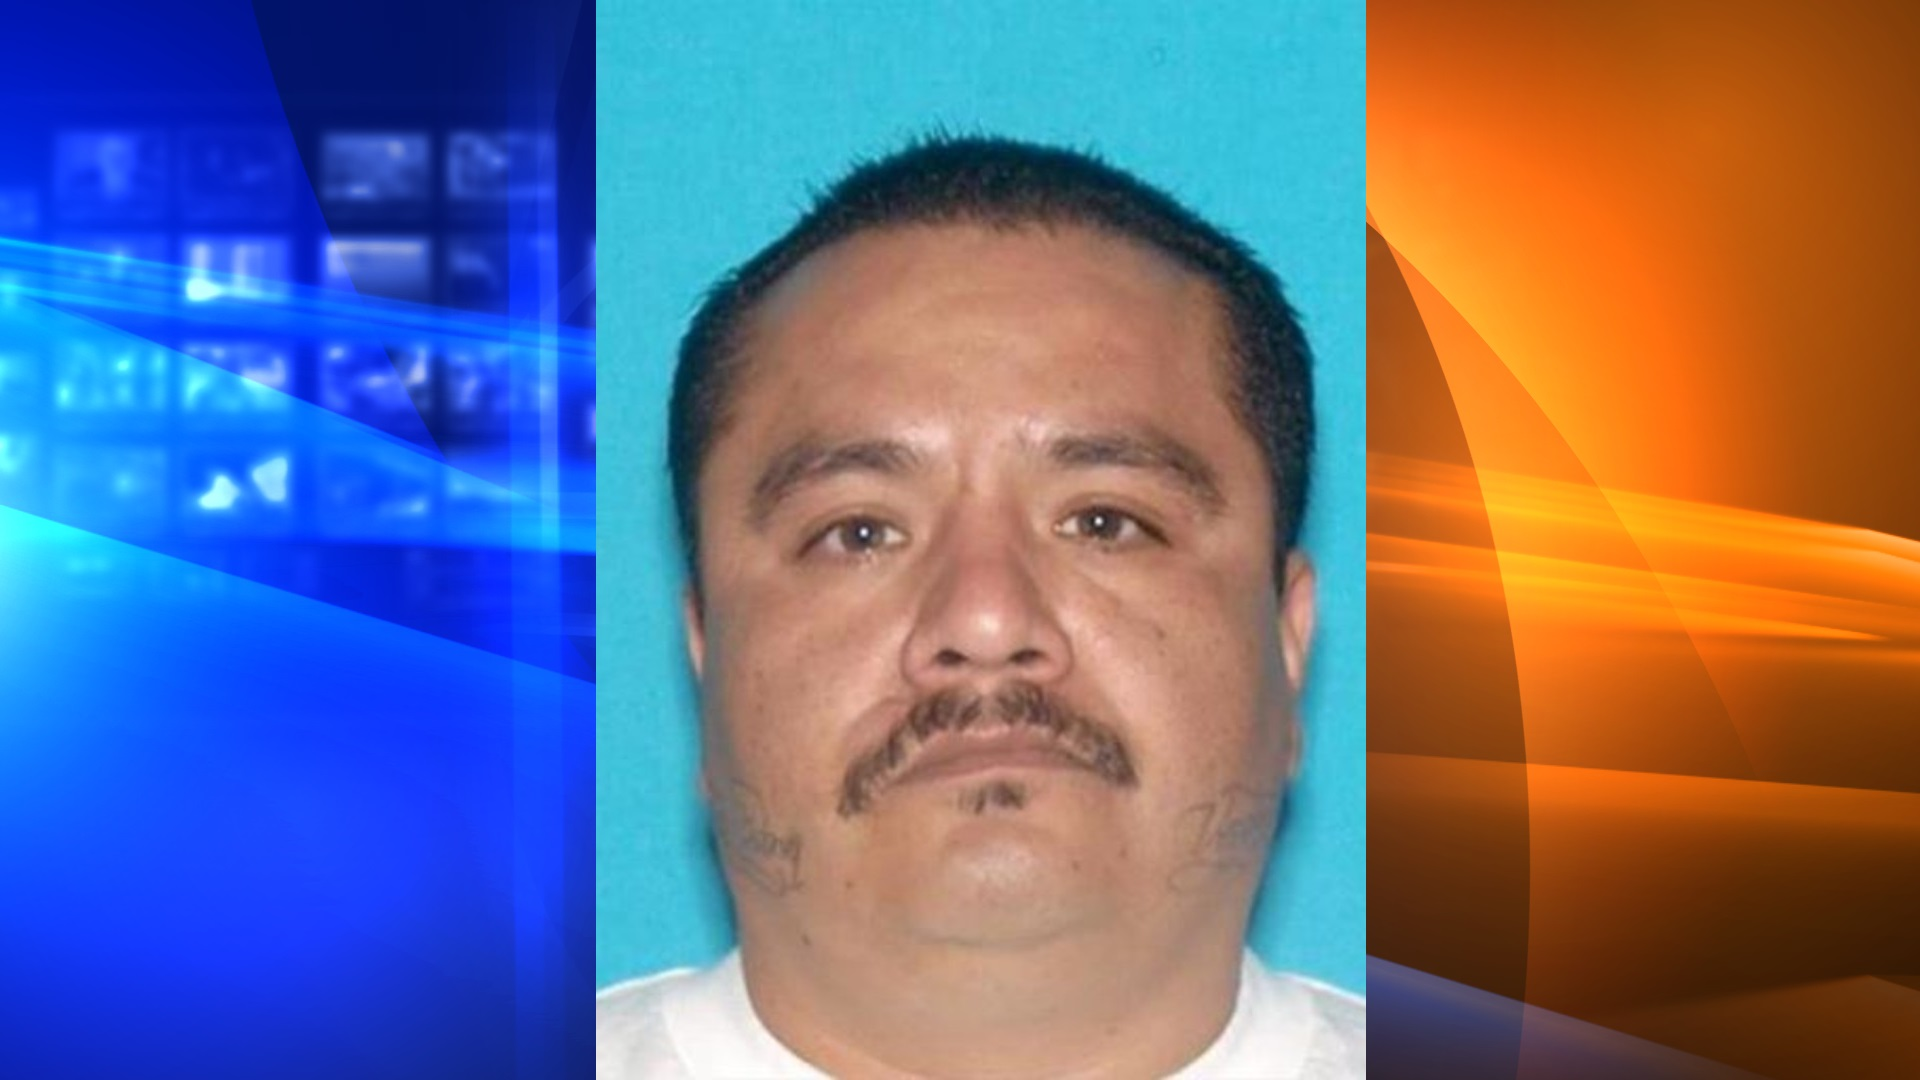 Homicide victim Johnnie Aceves, 42, of San Bernardino, pictured in a photo released by the San Bernardino Police Department on May 23, 2020.